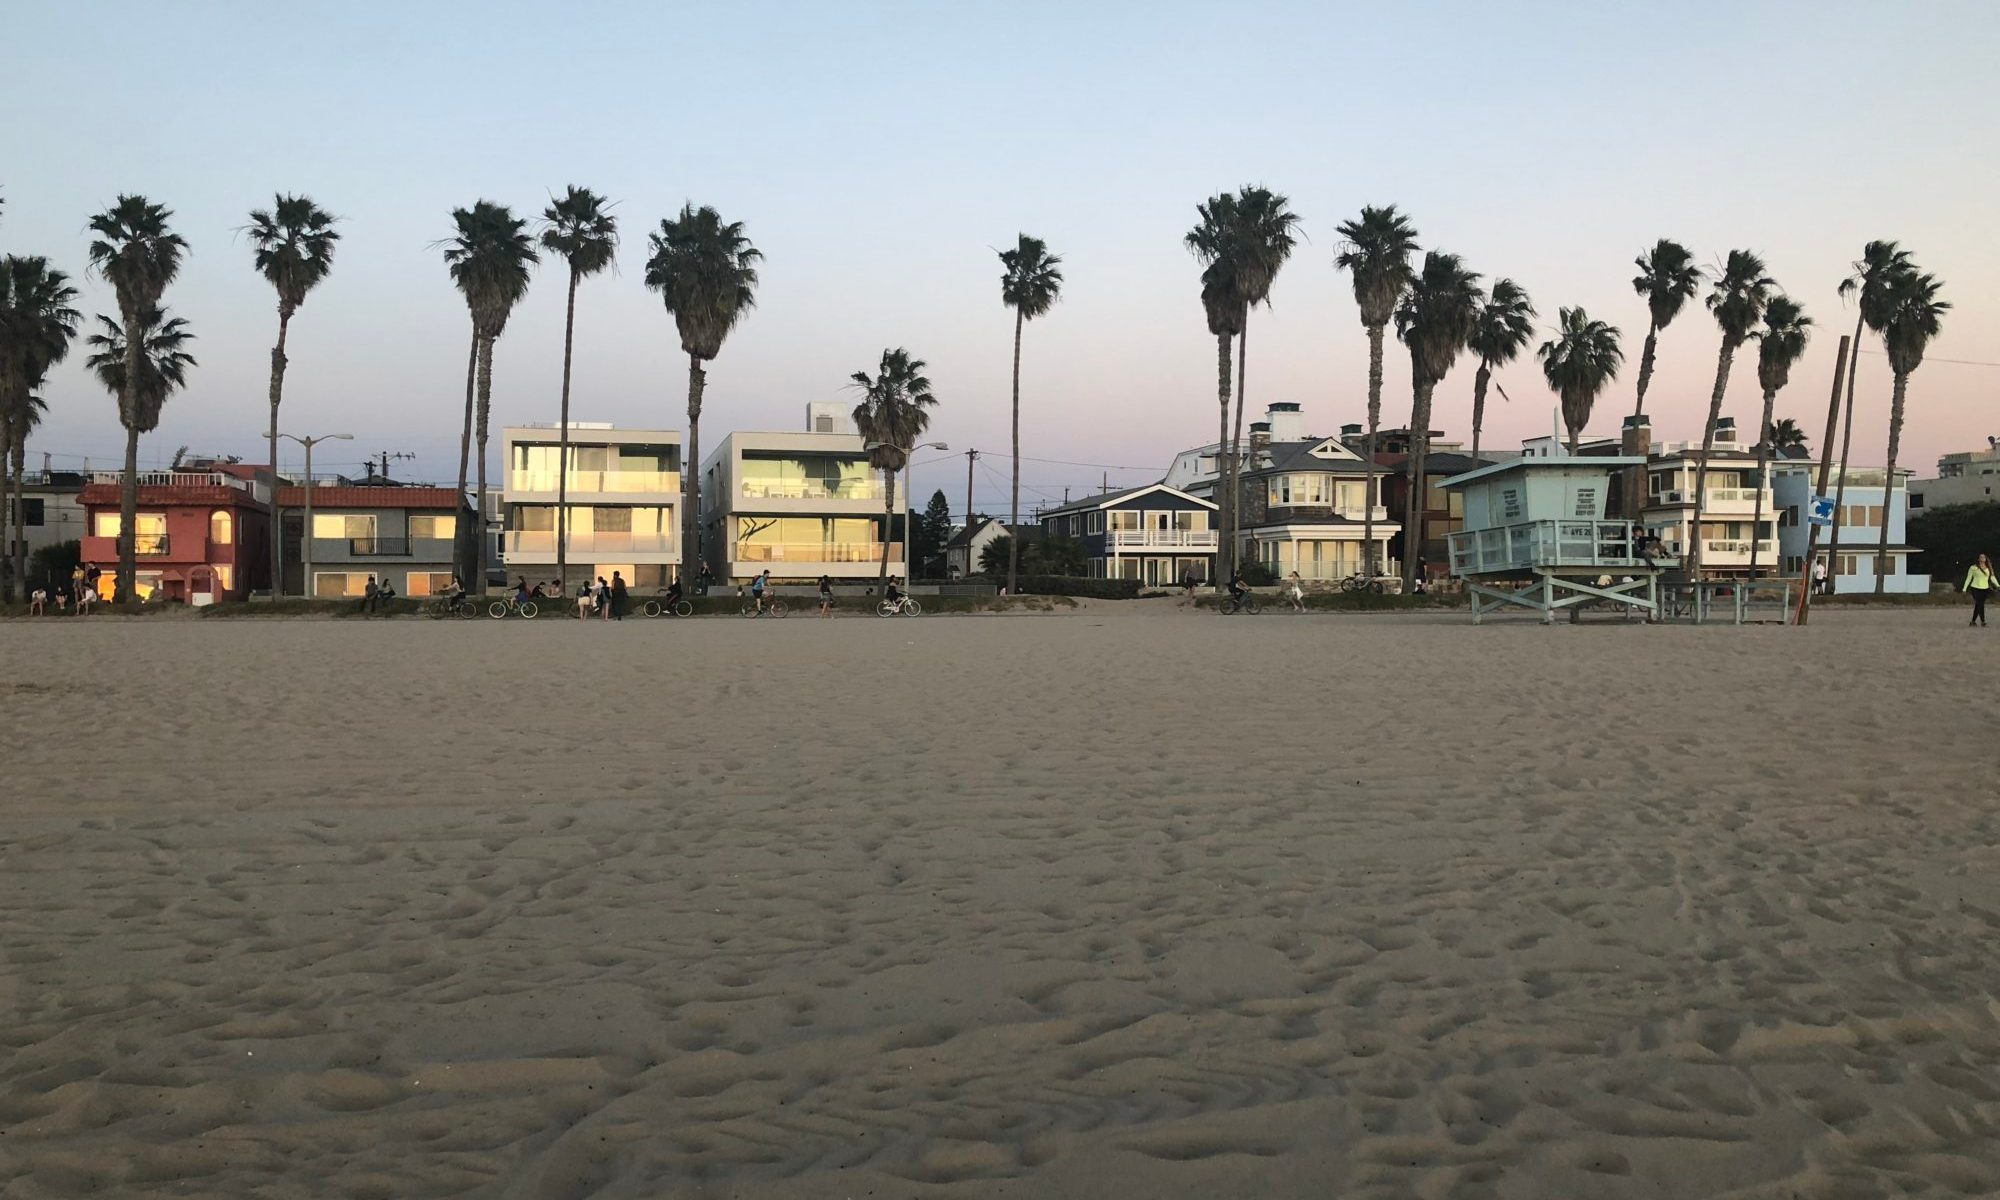 Three Days in LA: A Weekend Itinerary